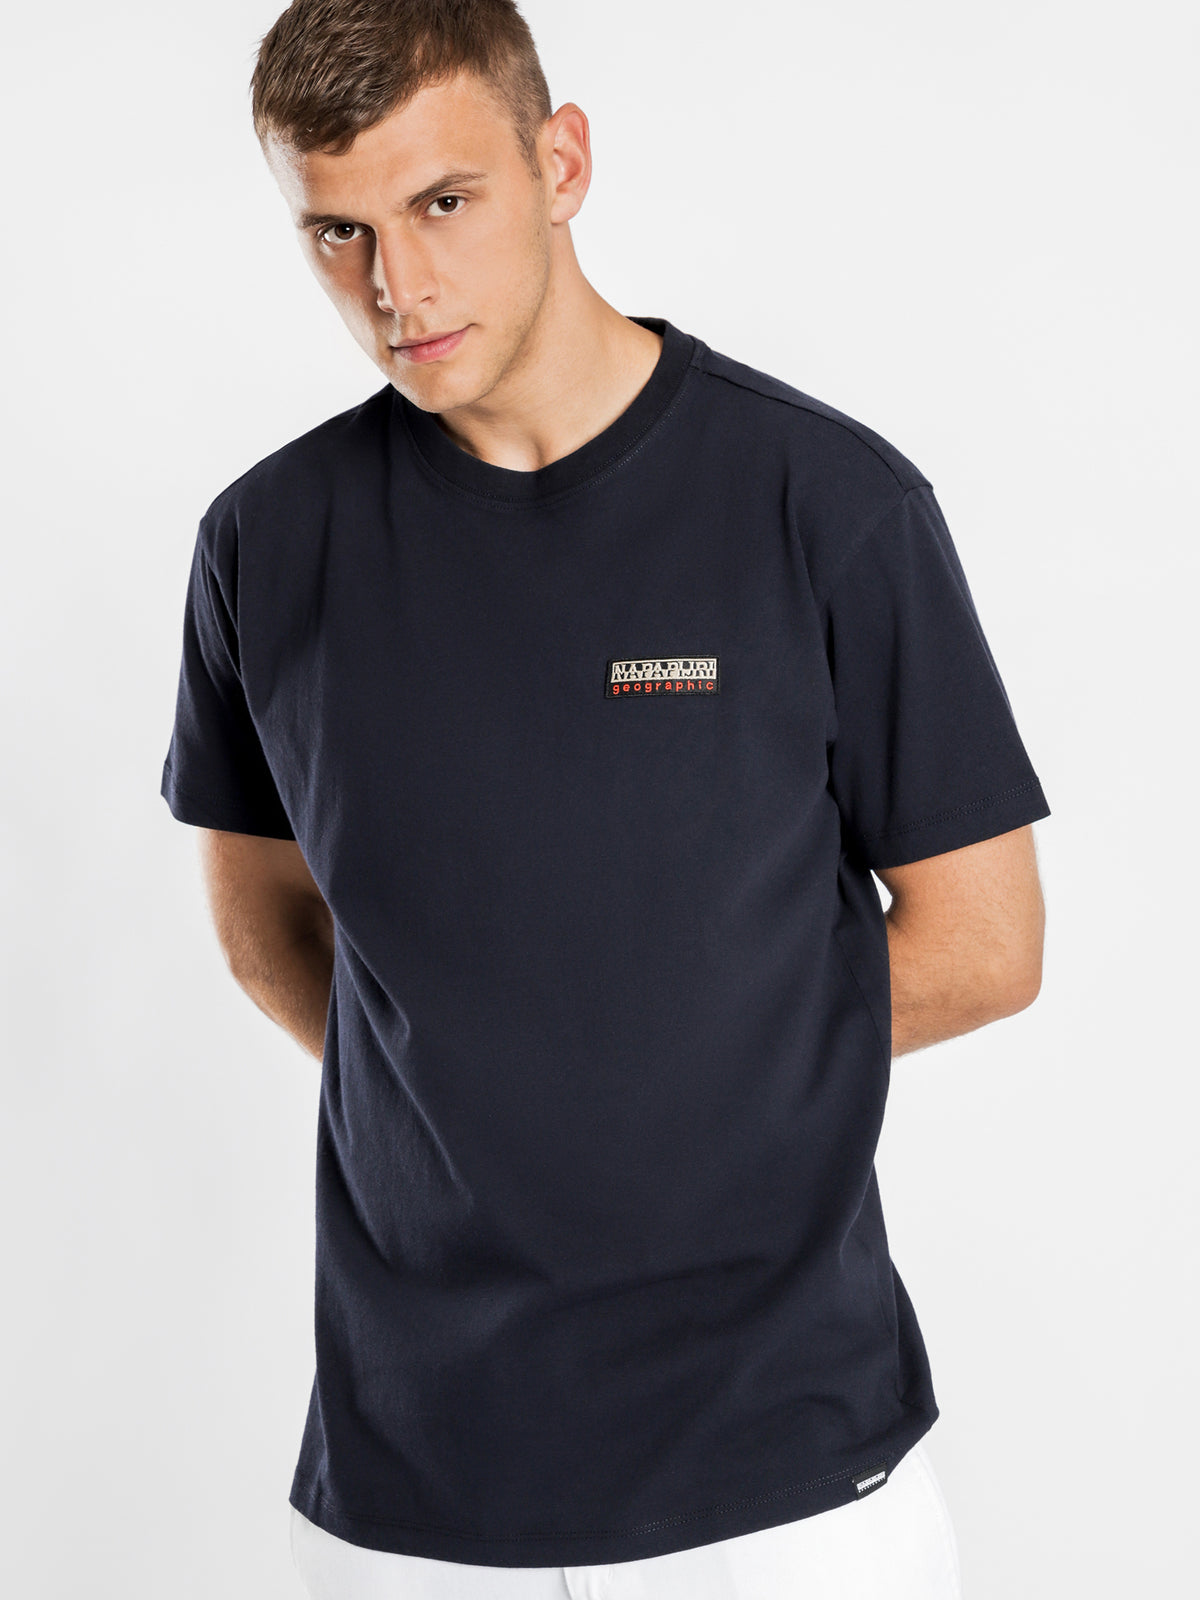 Sase Short Sleeve T-Shirt in Blue